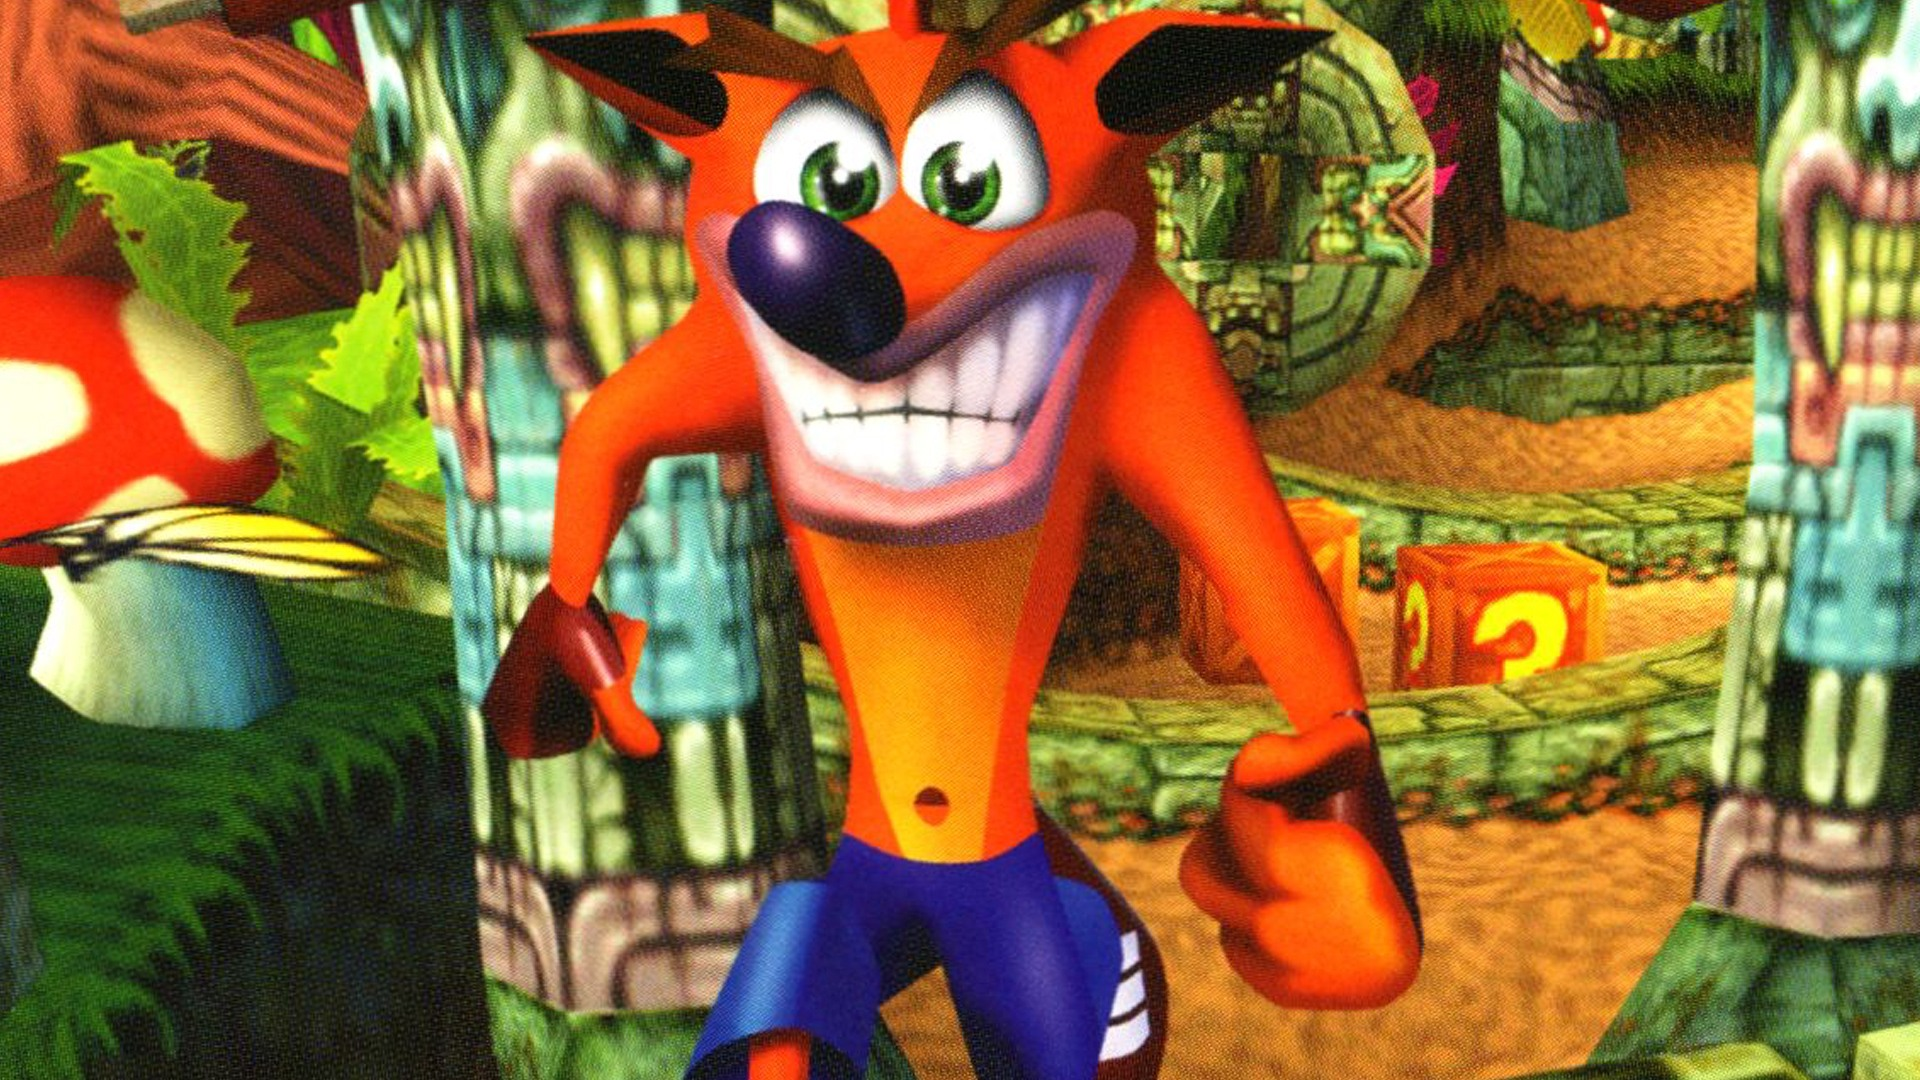 The most annoying gaming moments that only Crash Bandicoot fans will understand